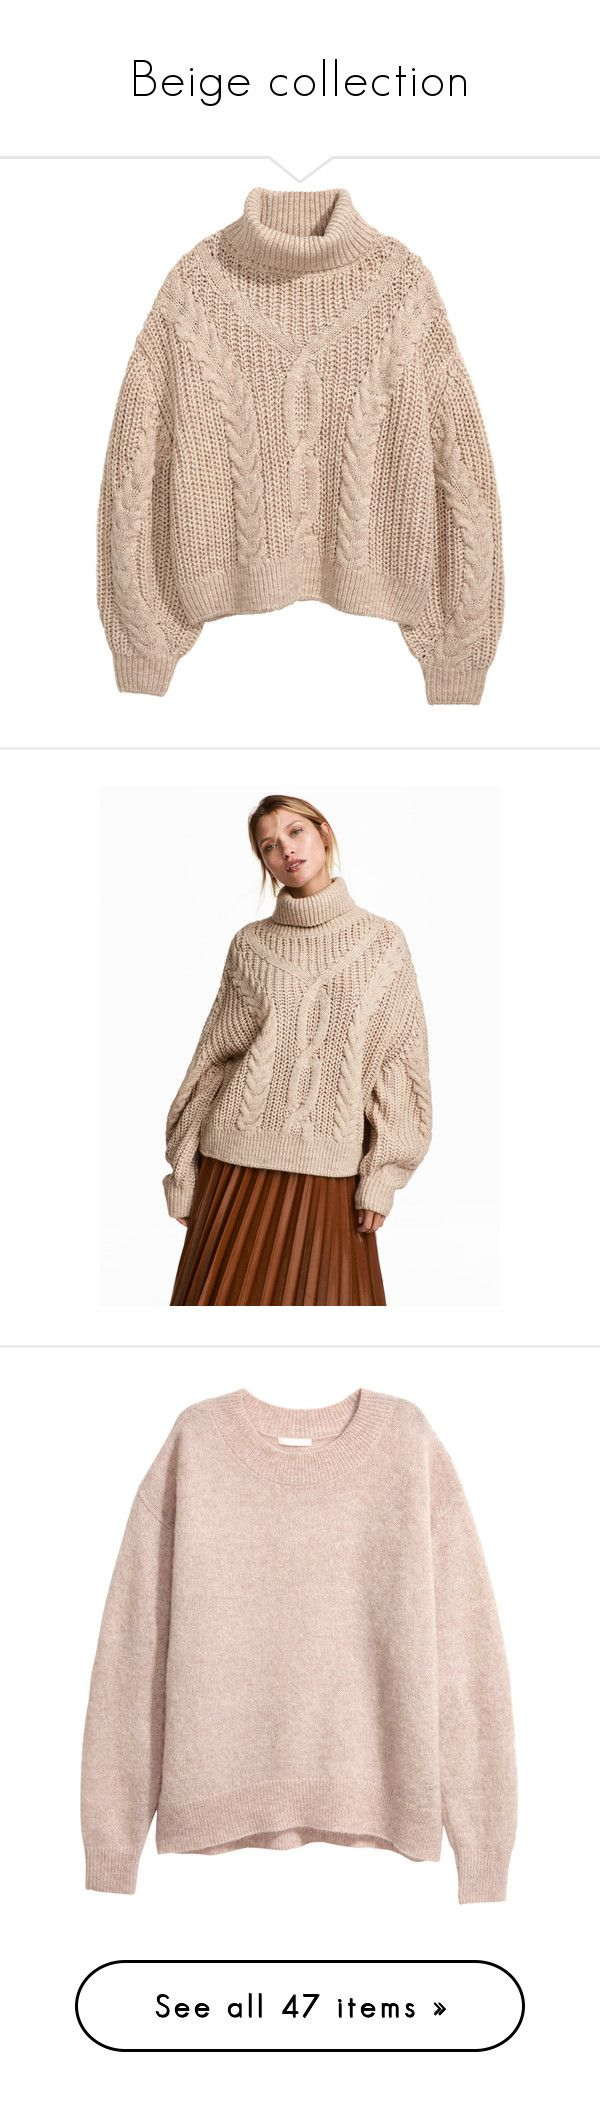 """""""Beige collection"""" by egorova-tatiana on Polyvore featuring tops, sweaters, turtle neck top, pink turtleneck sweaters, pink sweater, turtleneck top, short-sleeve turtleneck sweaters, polo neck sweater, sleeve top and beige turtleneck"""